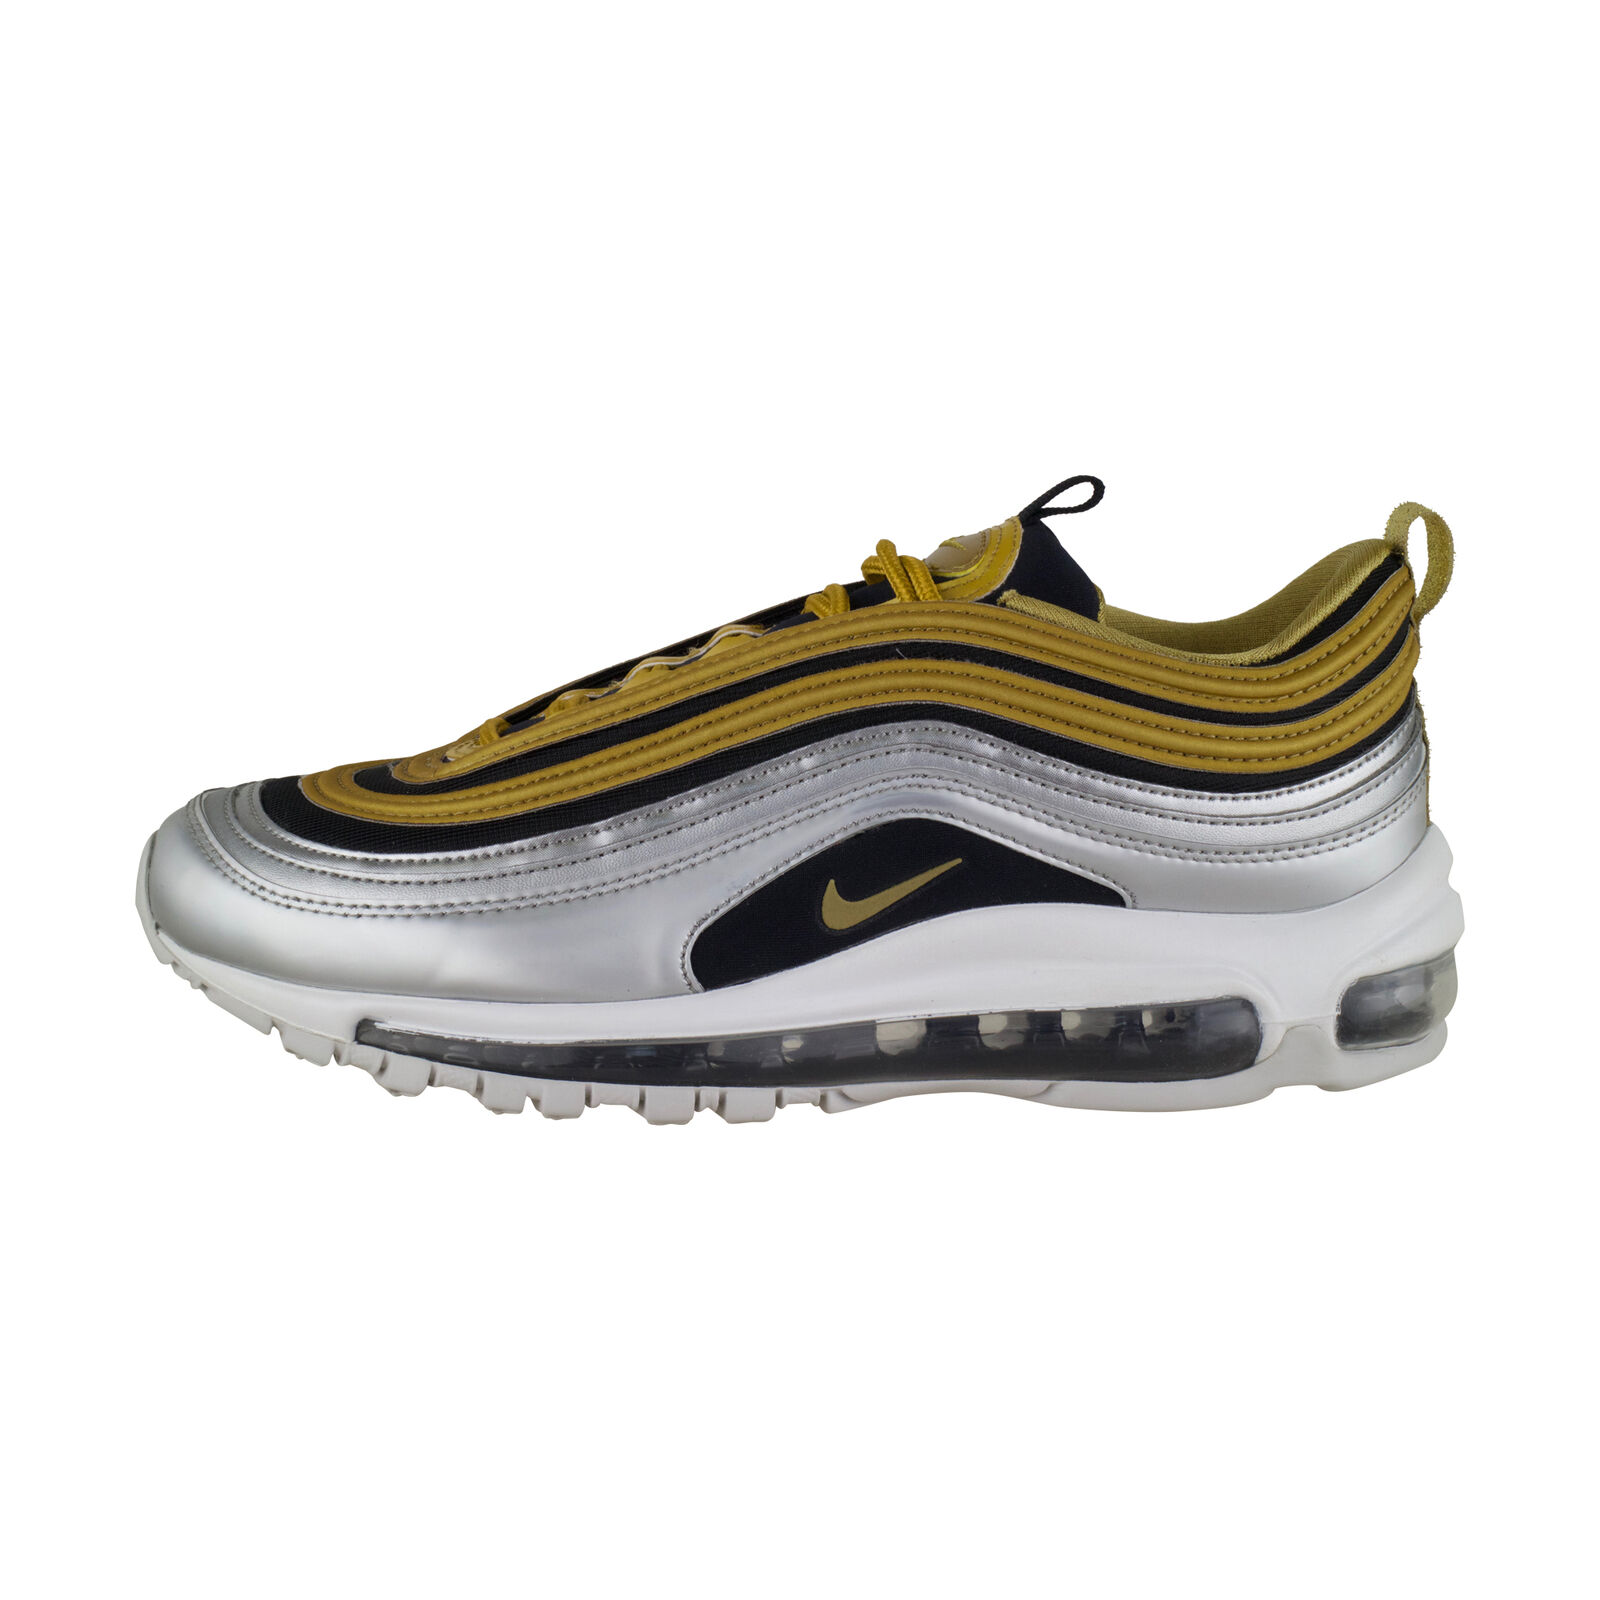 Nike Air Max 97 SE damen Gold silber AQ4137-700